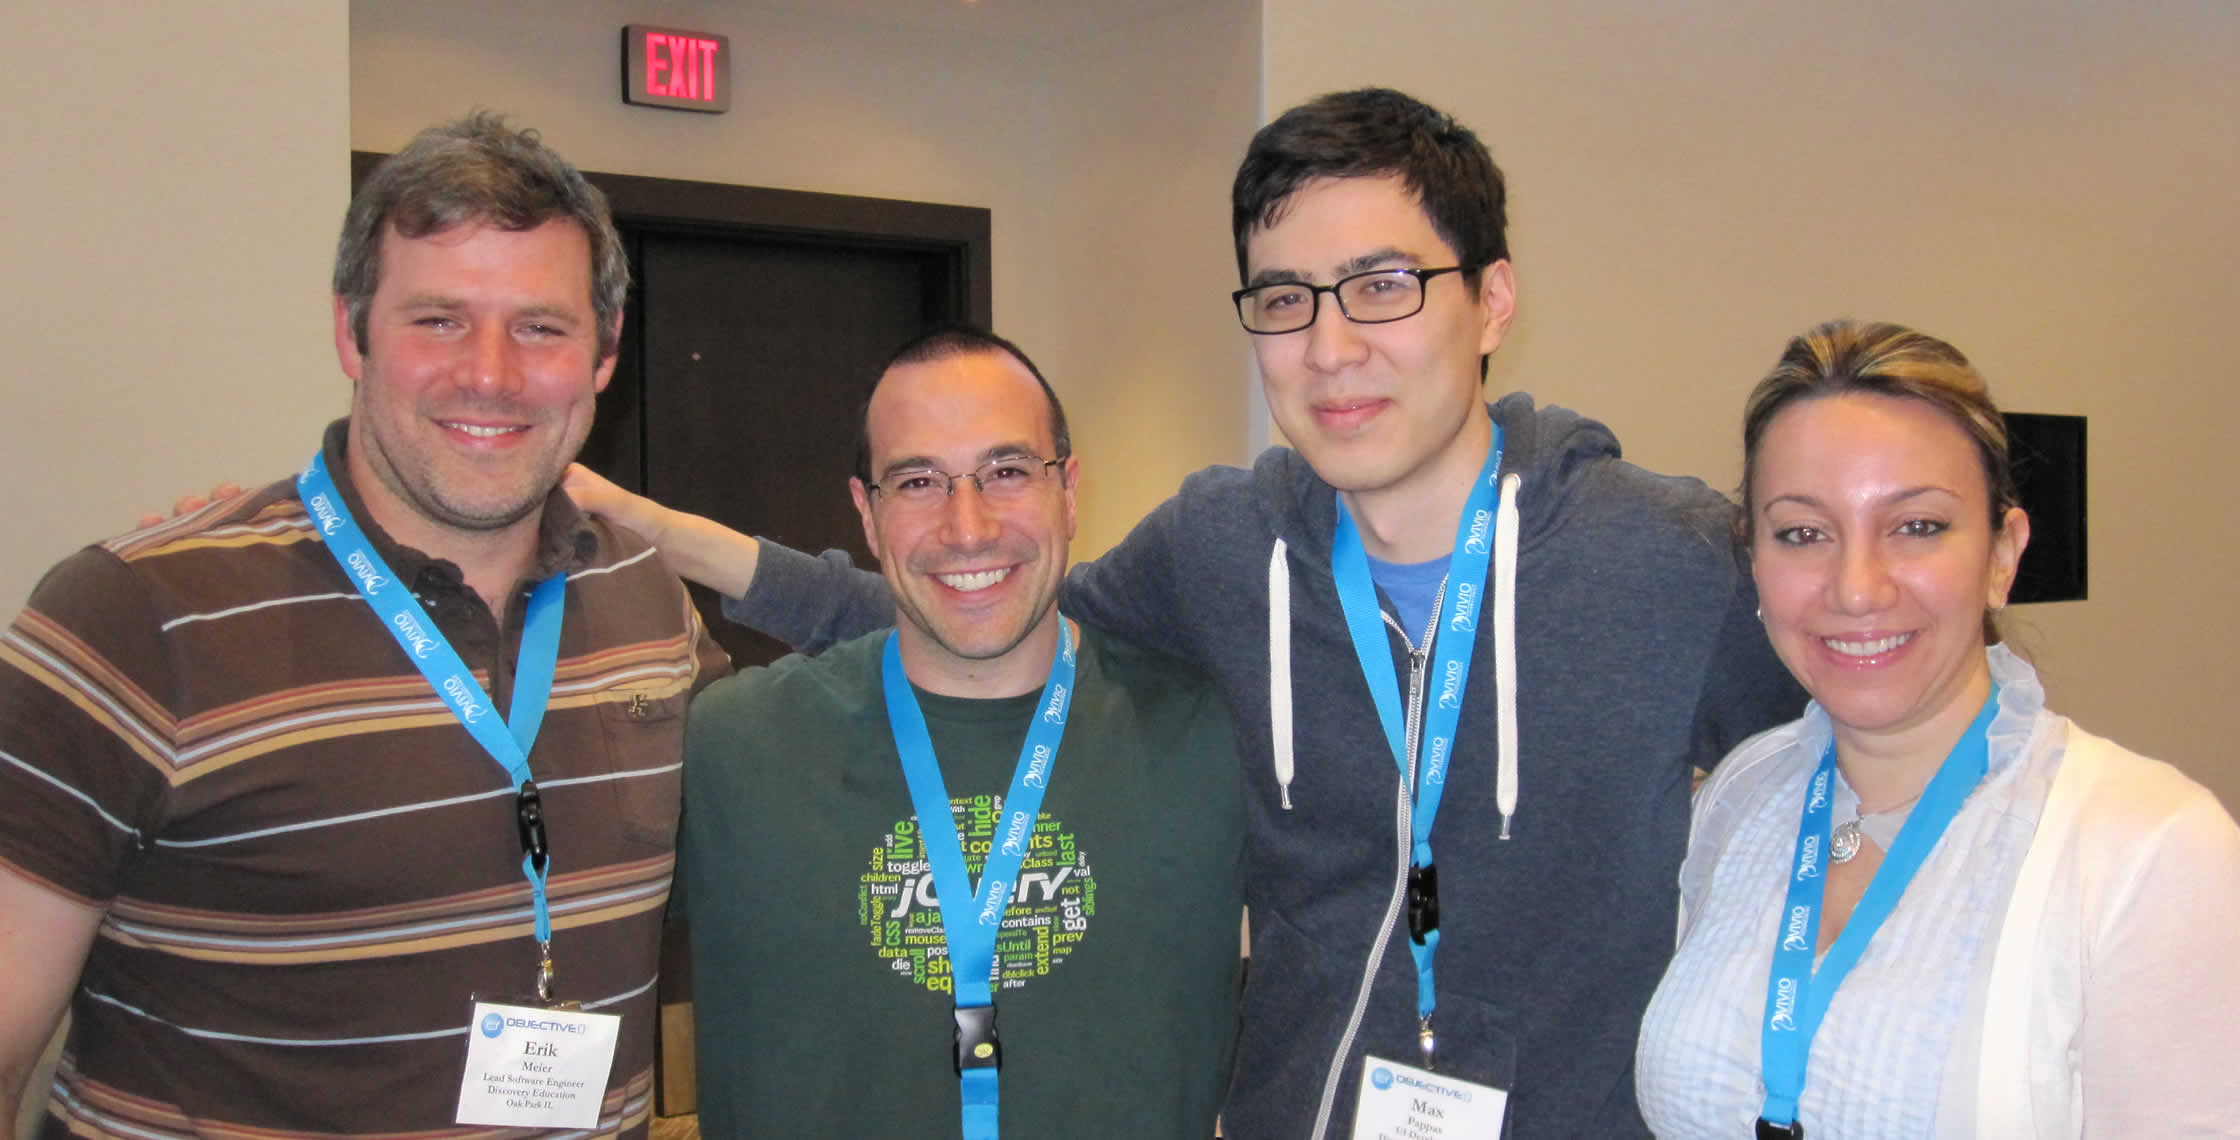 Ben Nadel at cf.Objective() 2013 (Bloomington, MN) with: Erik Meier and Max Pappas and Reem Jaghlit